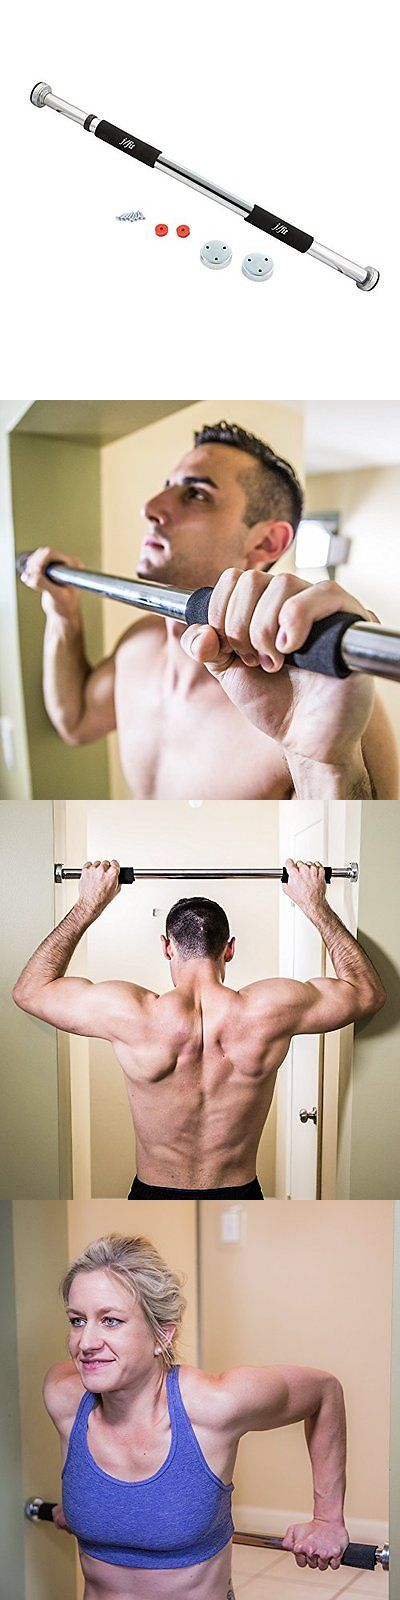 Pull Up Bars 179816: New Jfit Deluxe Doorway Pull Up Bar Free Shipping -> BUY IT NOW ONLY: $36.52 on eBay!